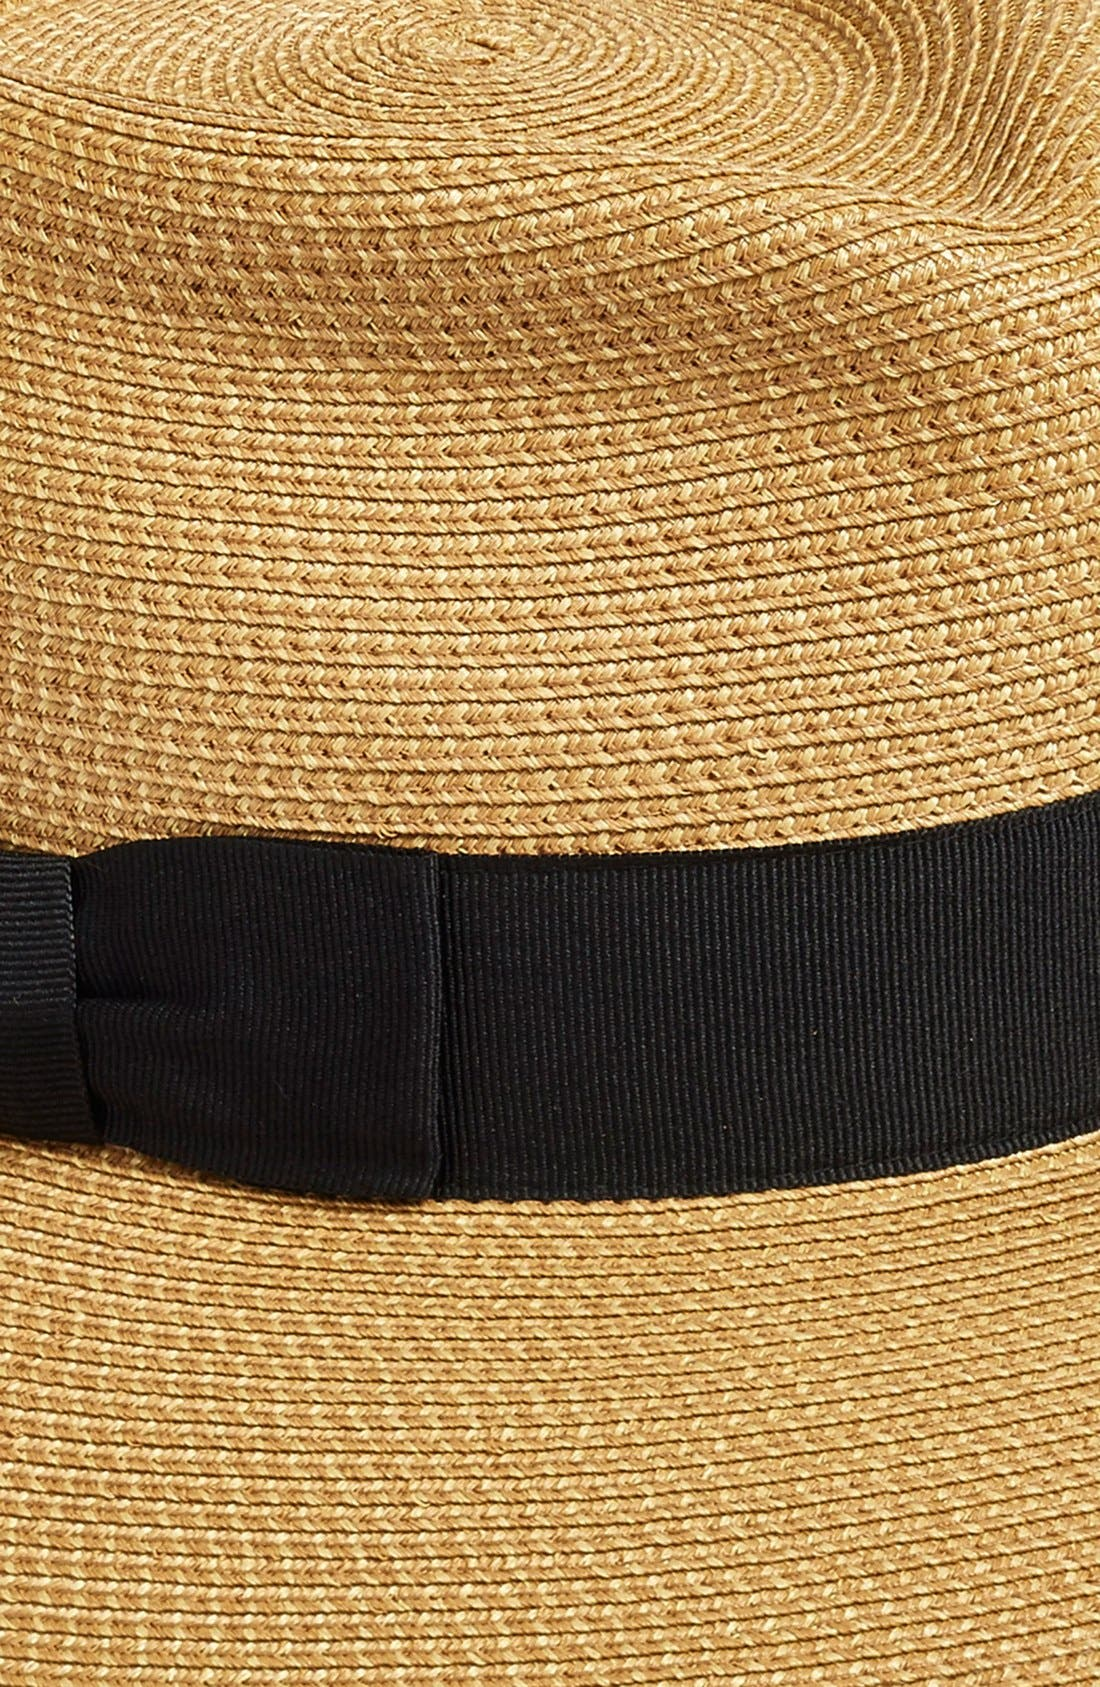 'Phoenix' Packable Fedora Sun Hat,                             Alternate thumbnail 2, color,                             NATURAL/ BLACK